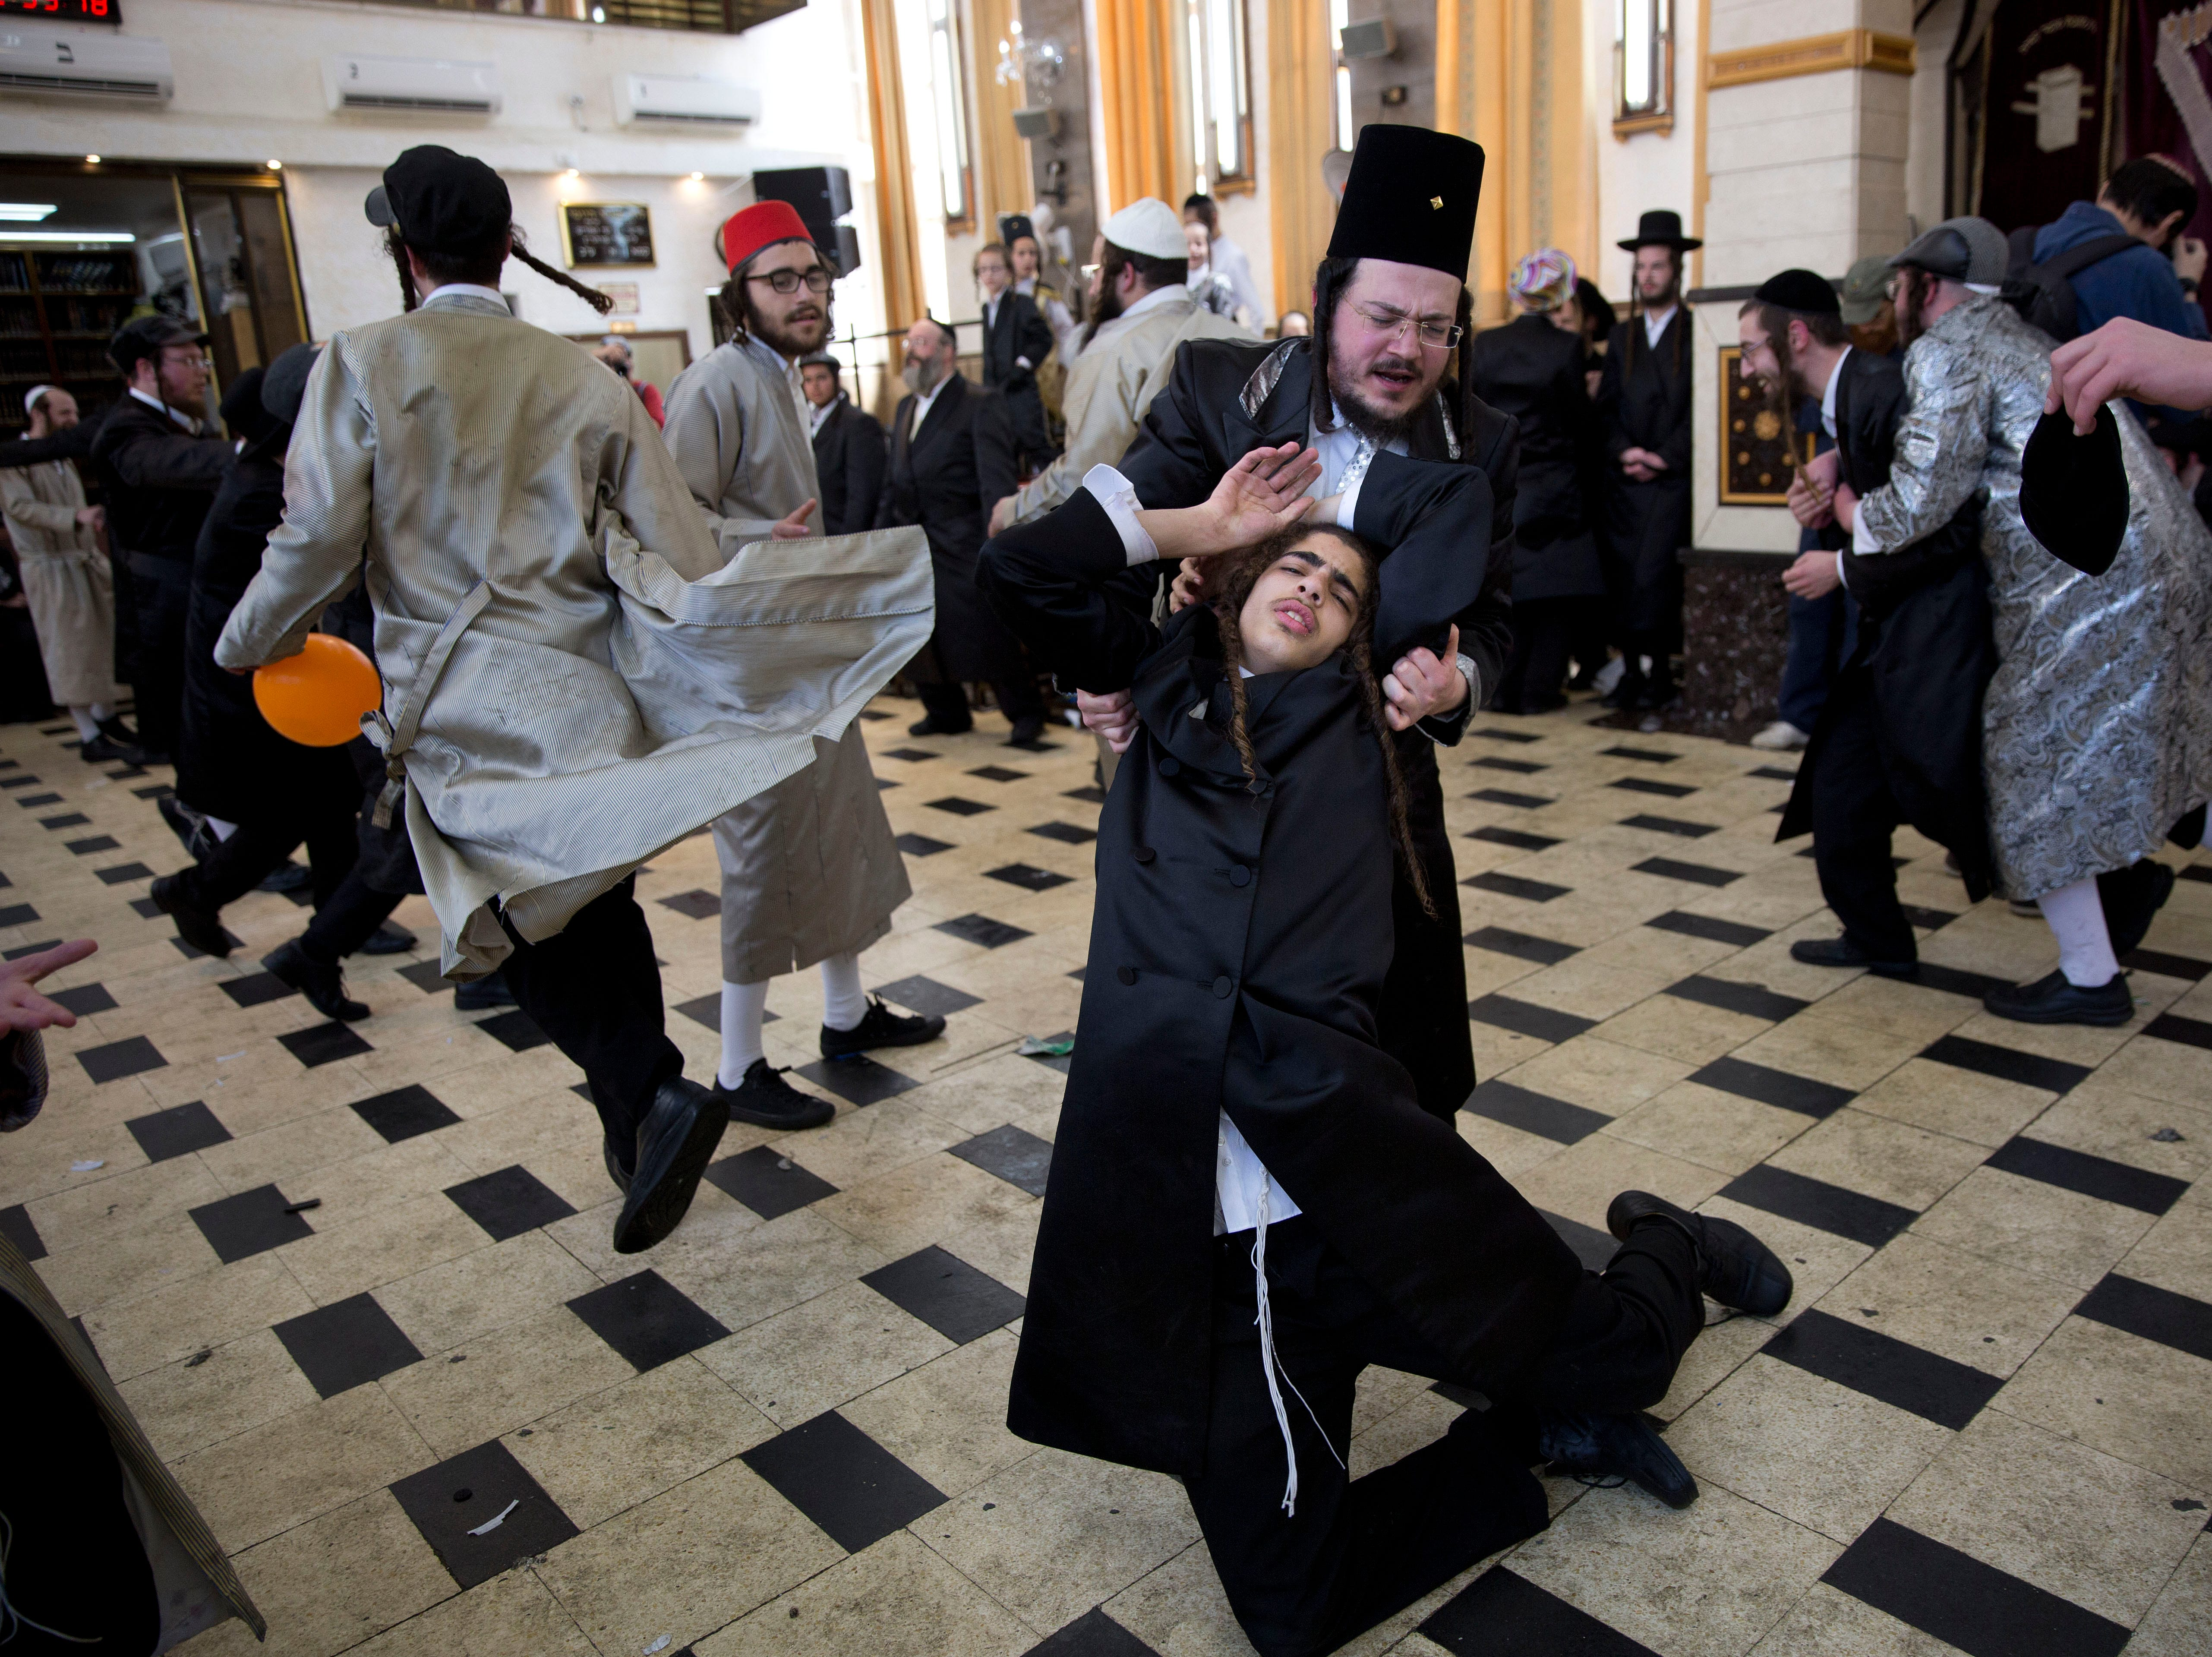 Men celebrate the Jewish holiday of Purim in the  ultra-Orthodox neighborhood of Mea Shearim, in Jerusalem, Friday, March 22, 2019. The holiday celebrates the Jews' salvation from genocide in ancient Persia, as recounted in the Scroll of Esther.